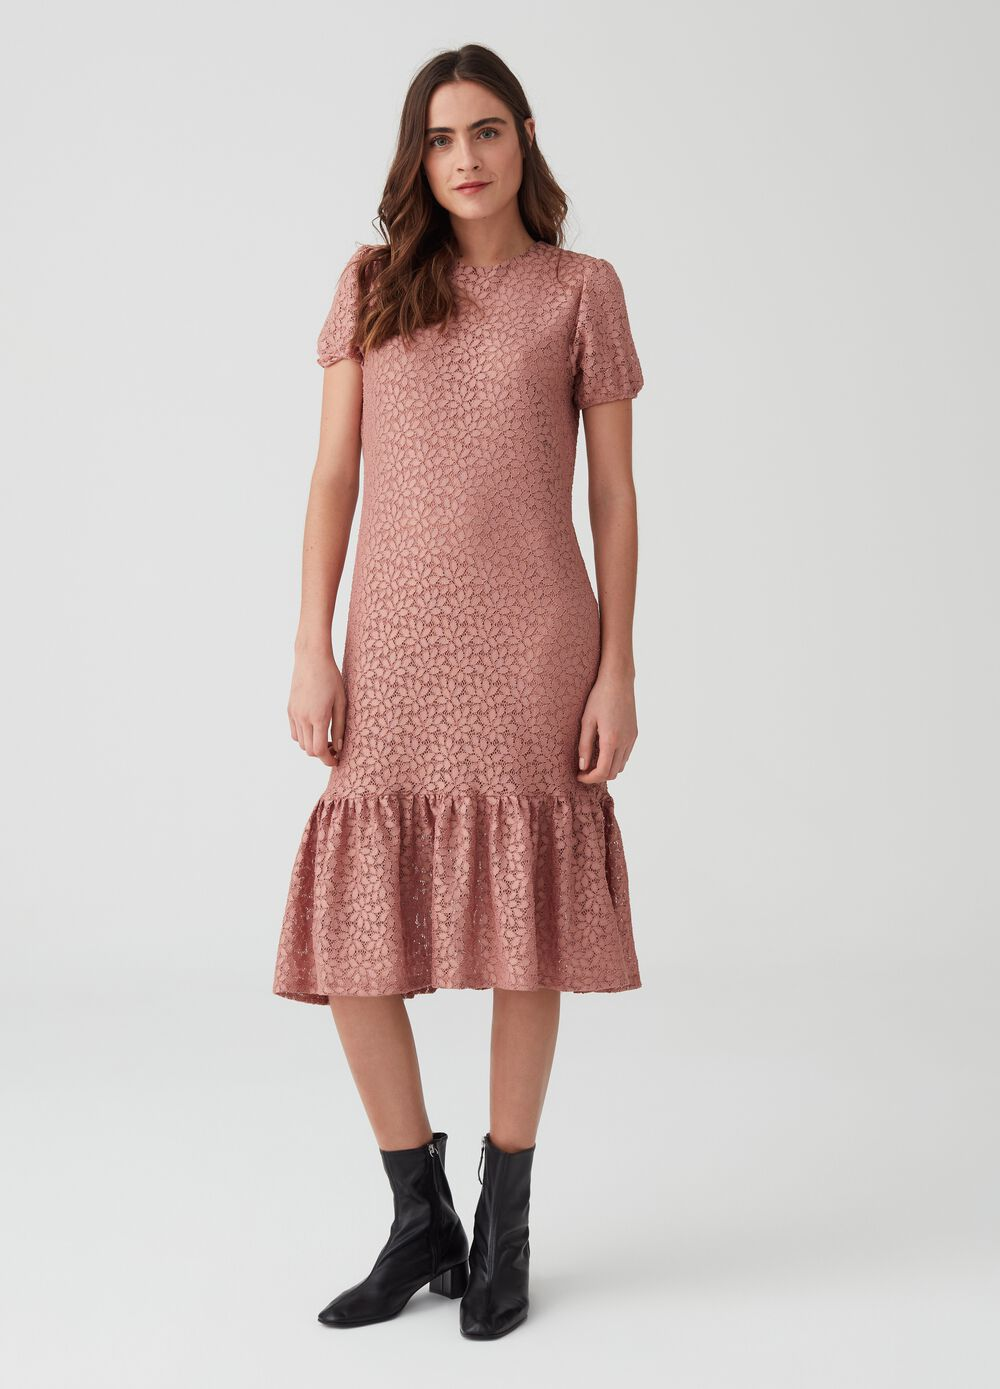 Floral lace dress with short sleeves